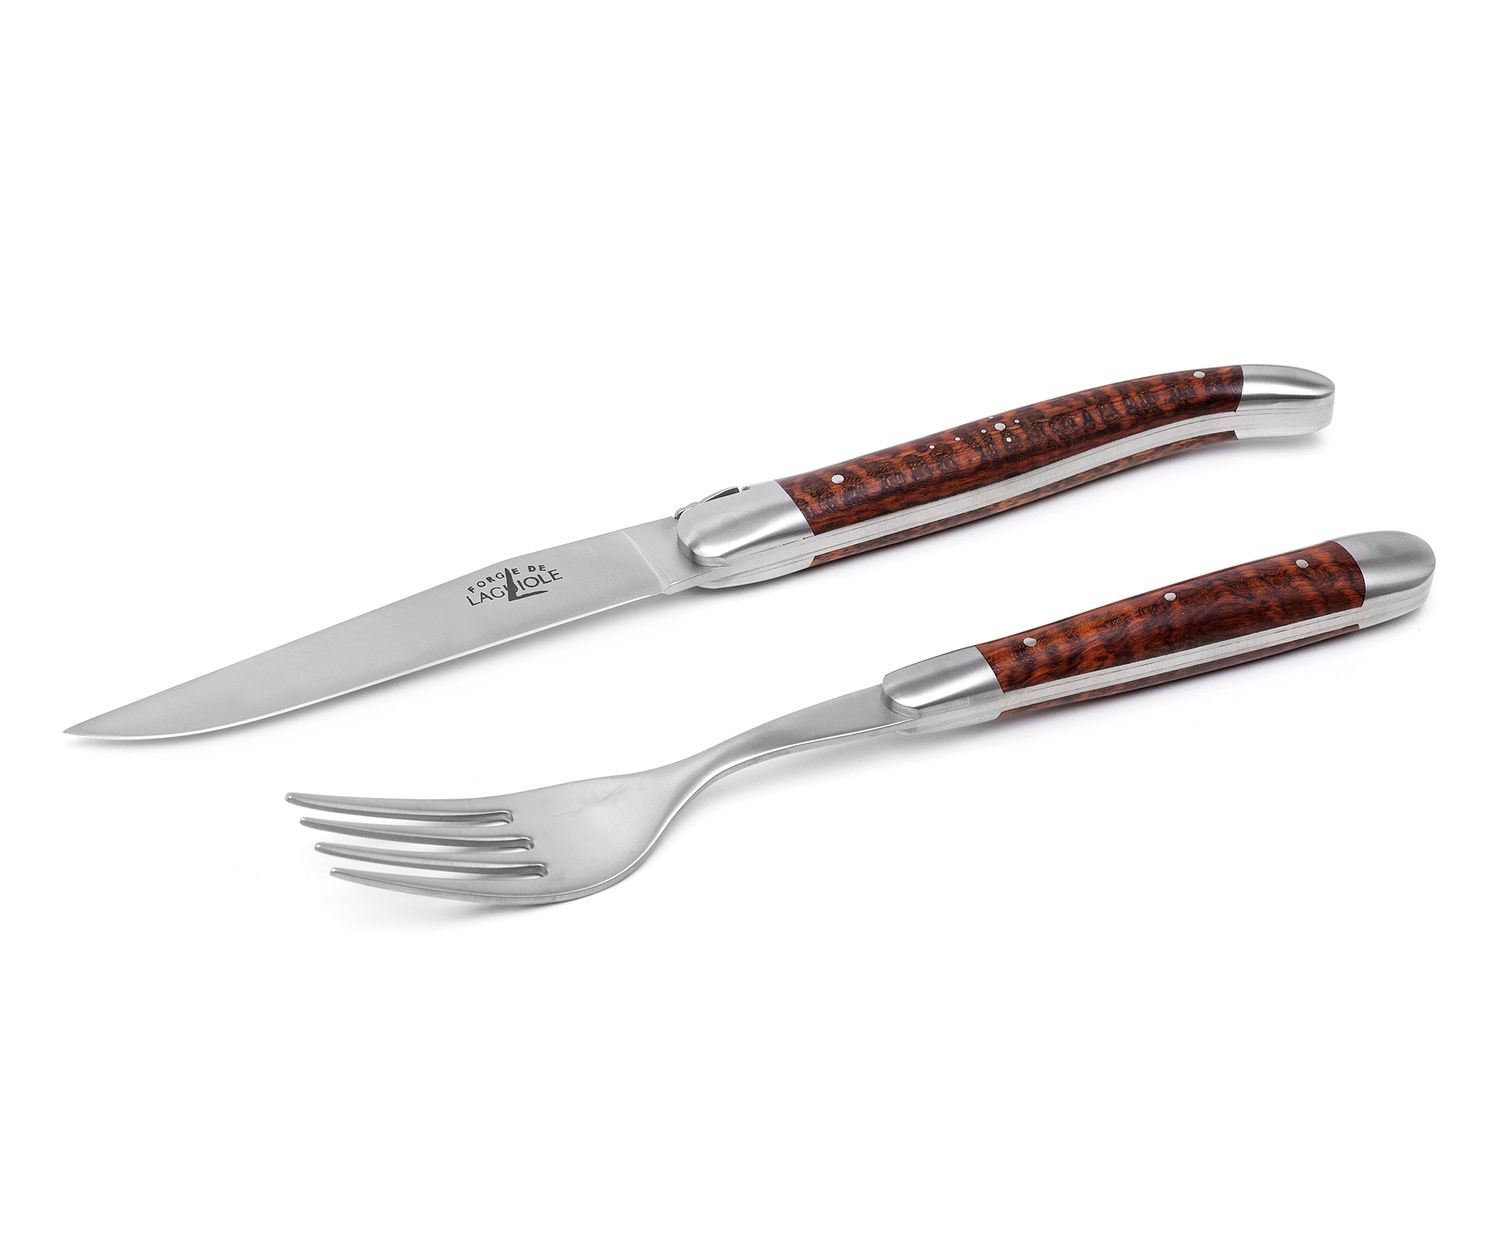 Forge de Laguiole Steak-Set 2-tlg, Amourette